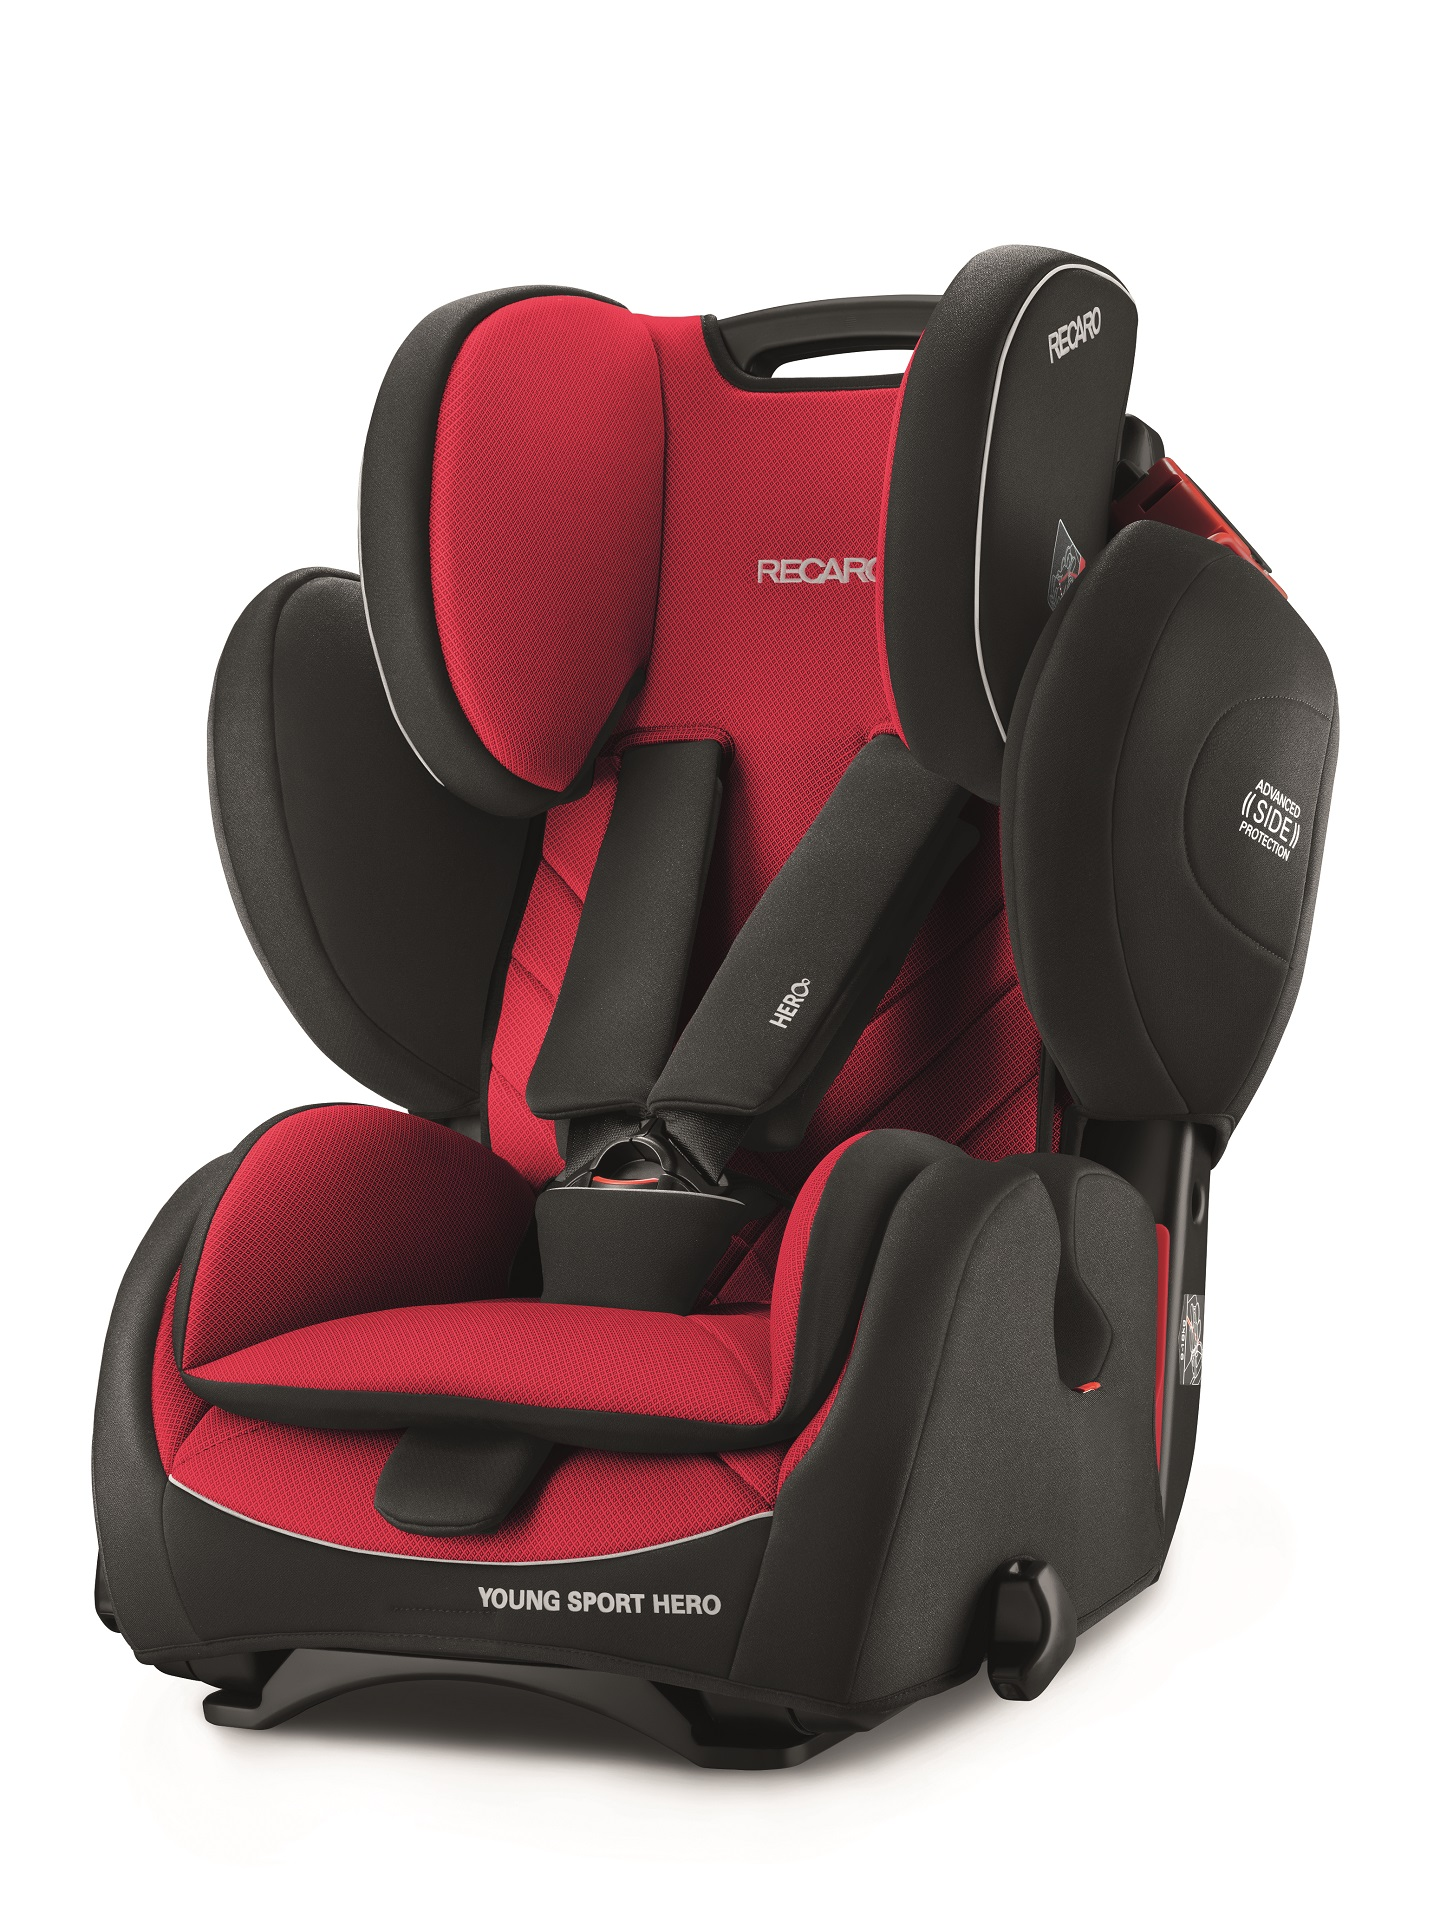 recaro child car seat young sport hero 2018 racing red buy at kidsroom car seats. Black Bedroom Furniture Sets. Home Design Ideas